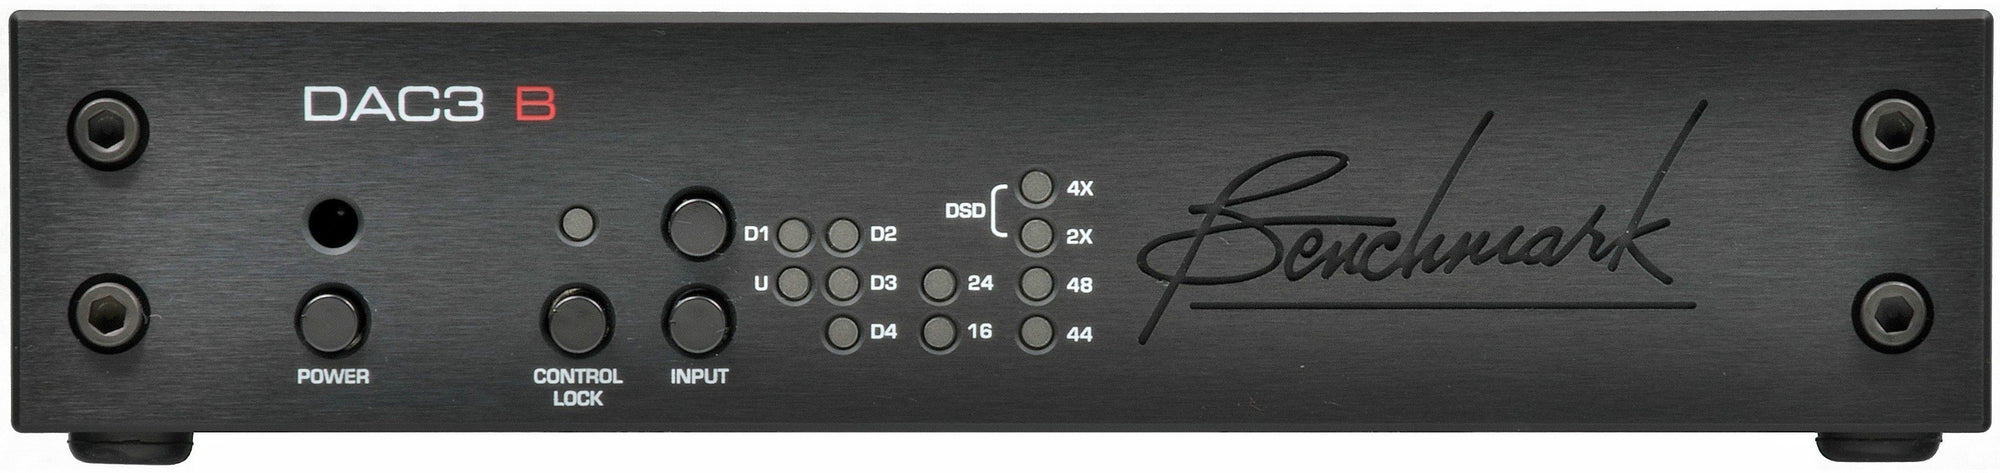 Benchmark DAC3 B - Digital to Analog Audio Converter